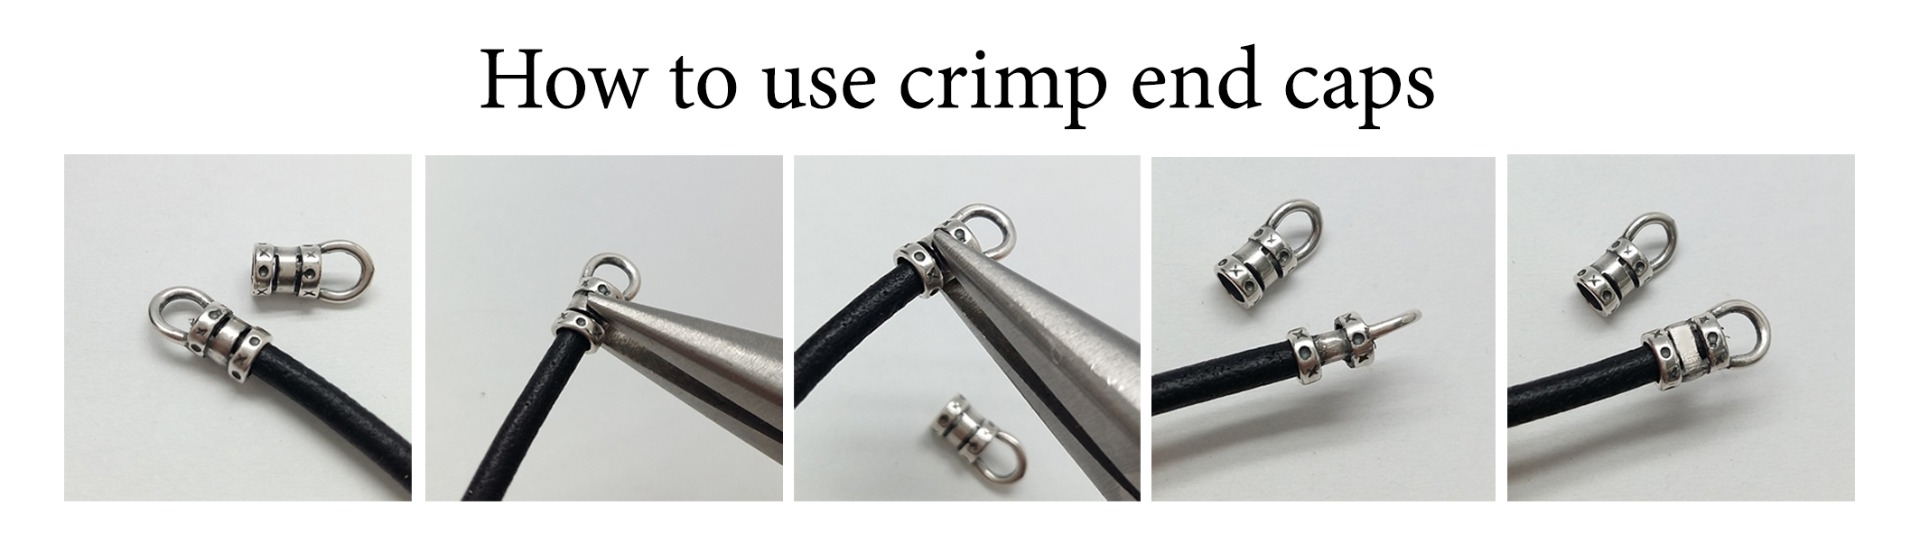 How to use crimp end caps